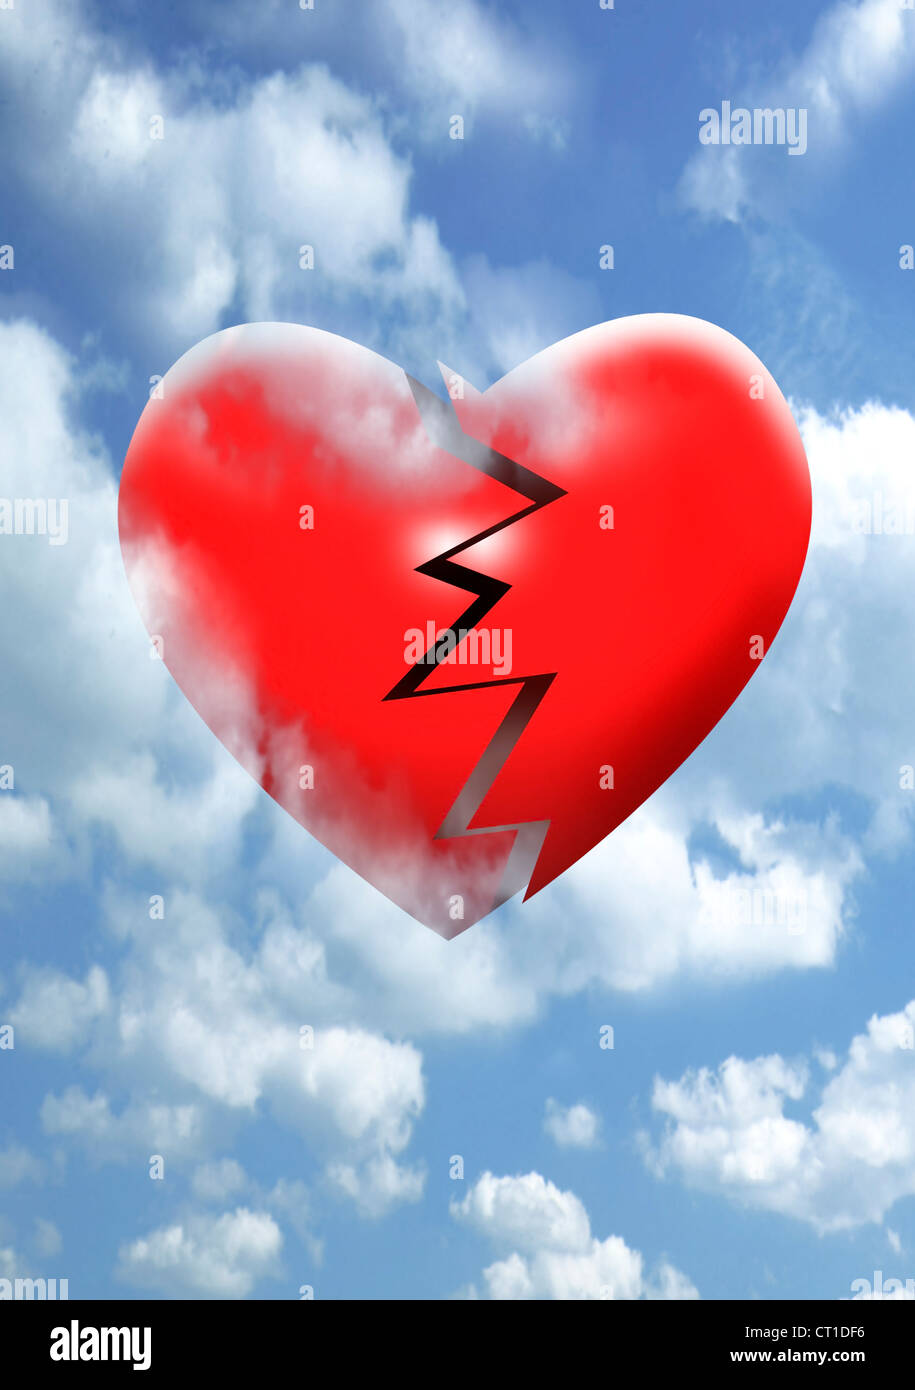 A broken heart in the sky - Stock Image